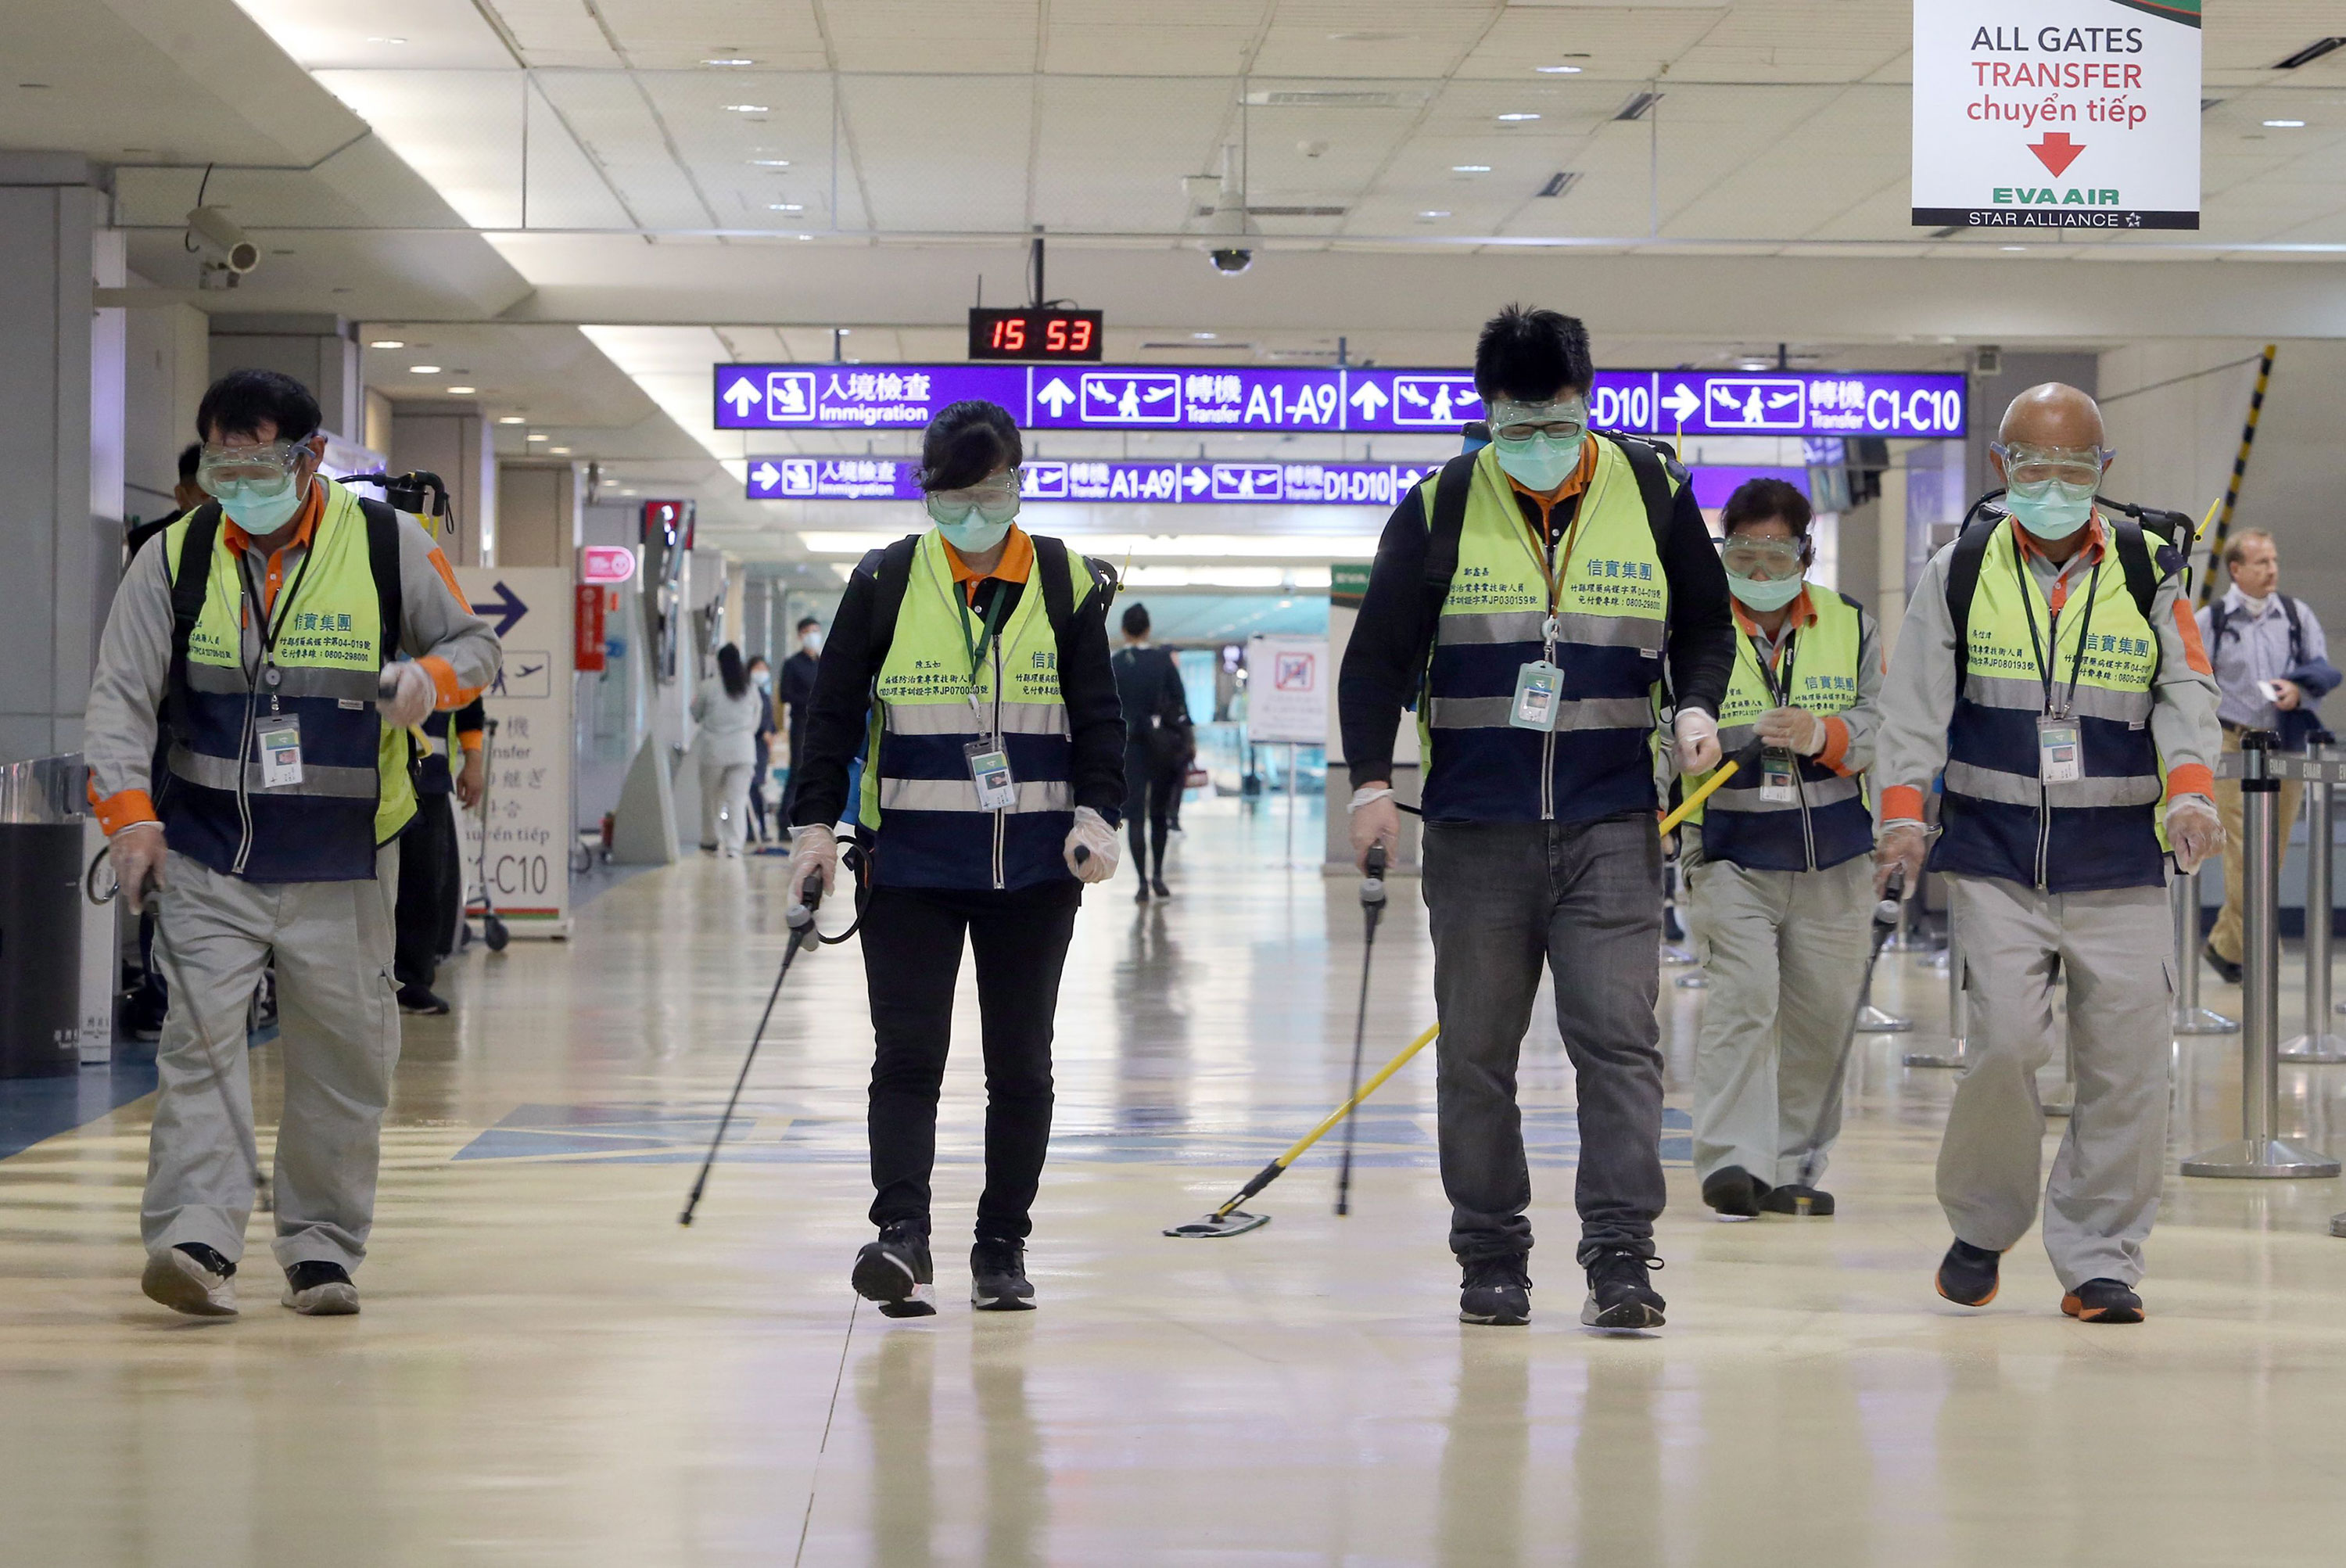 Workers disinfect a passenger throughfare at the Taoyuan International Airport in Taiwan on January 22.